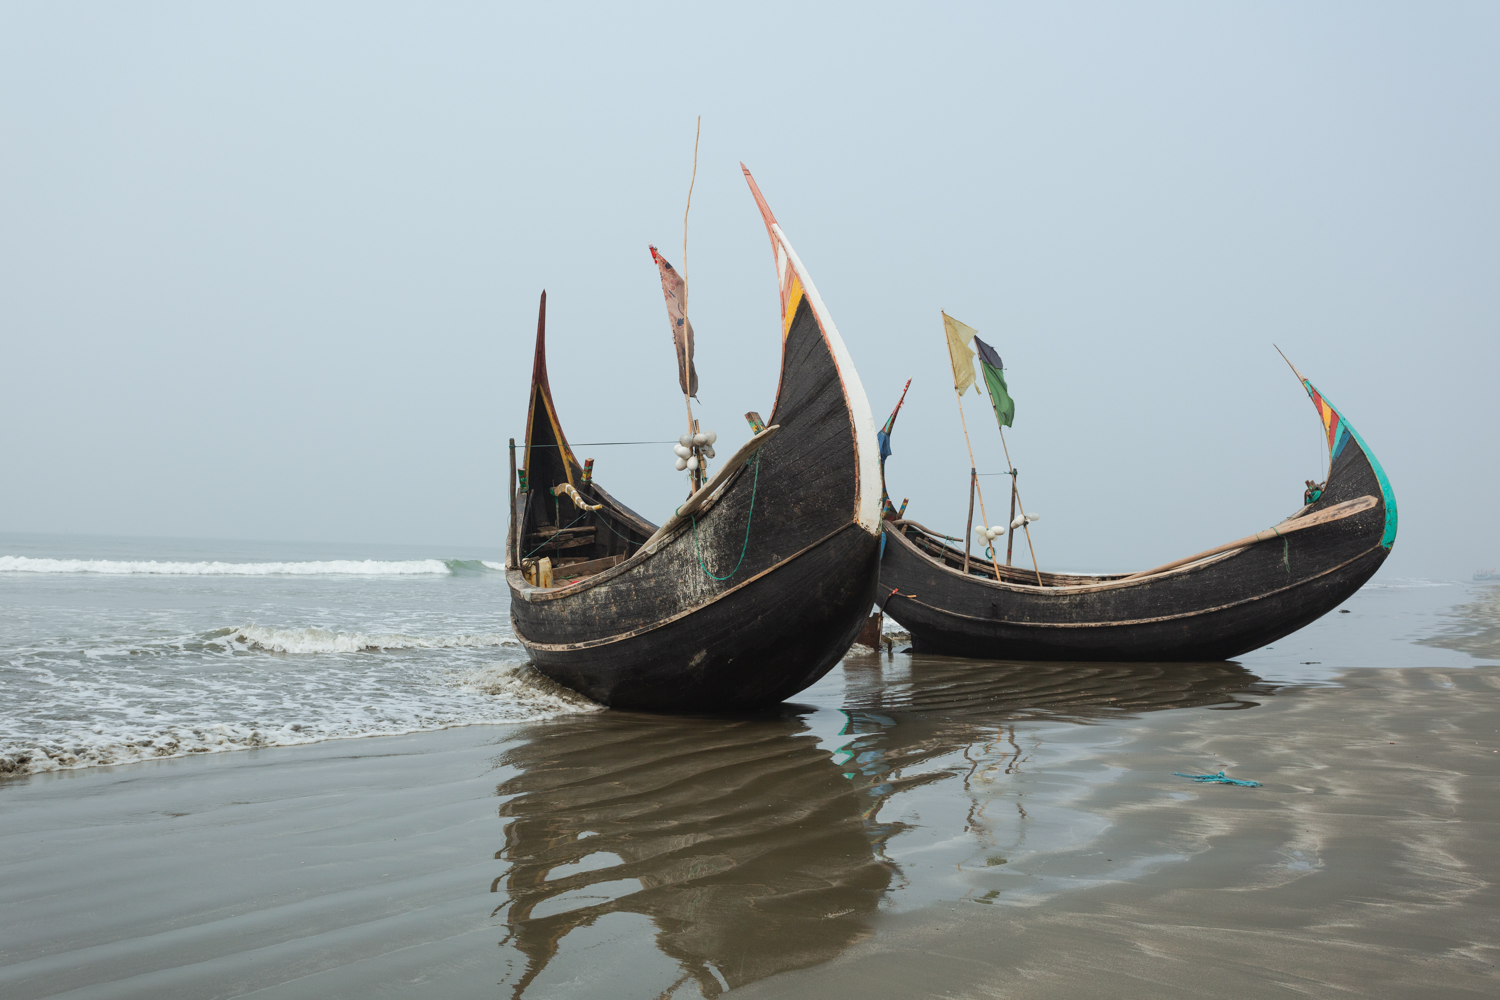 Community made boats at  Bay of Bengal, Cox's Bazar Bangladesh